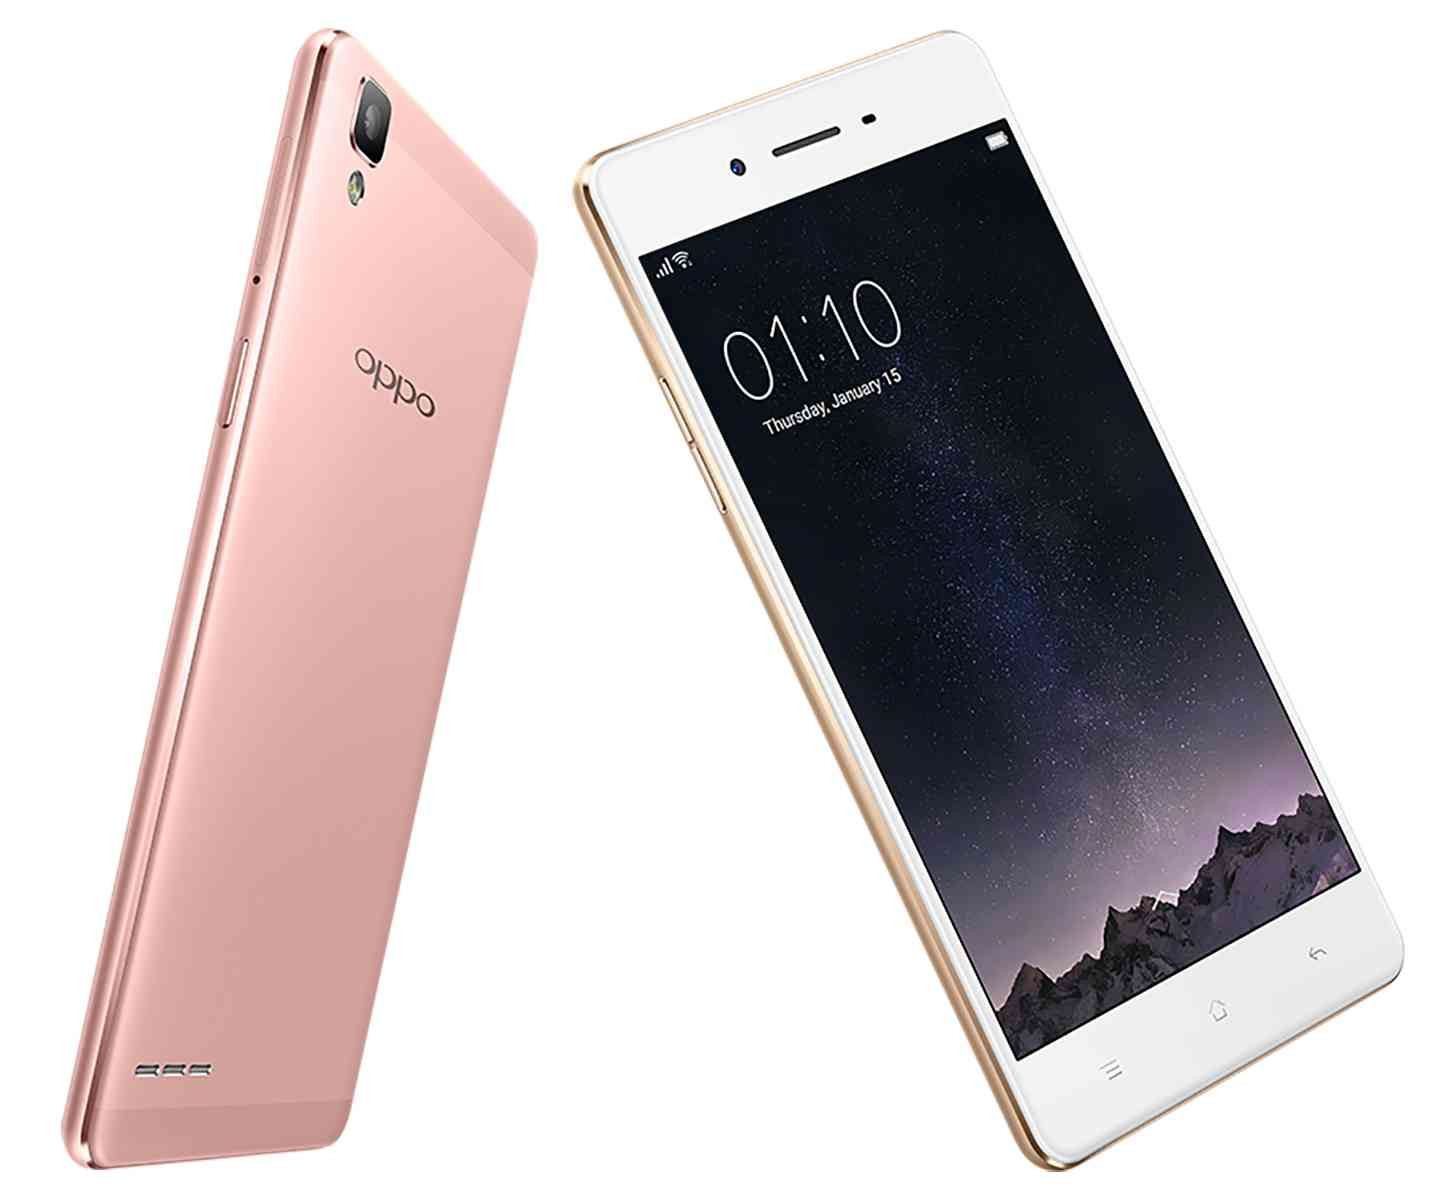 OPPO_F1_FOR_RENT_CAFE